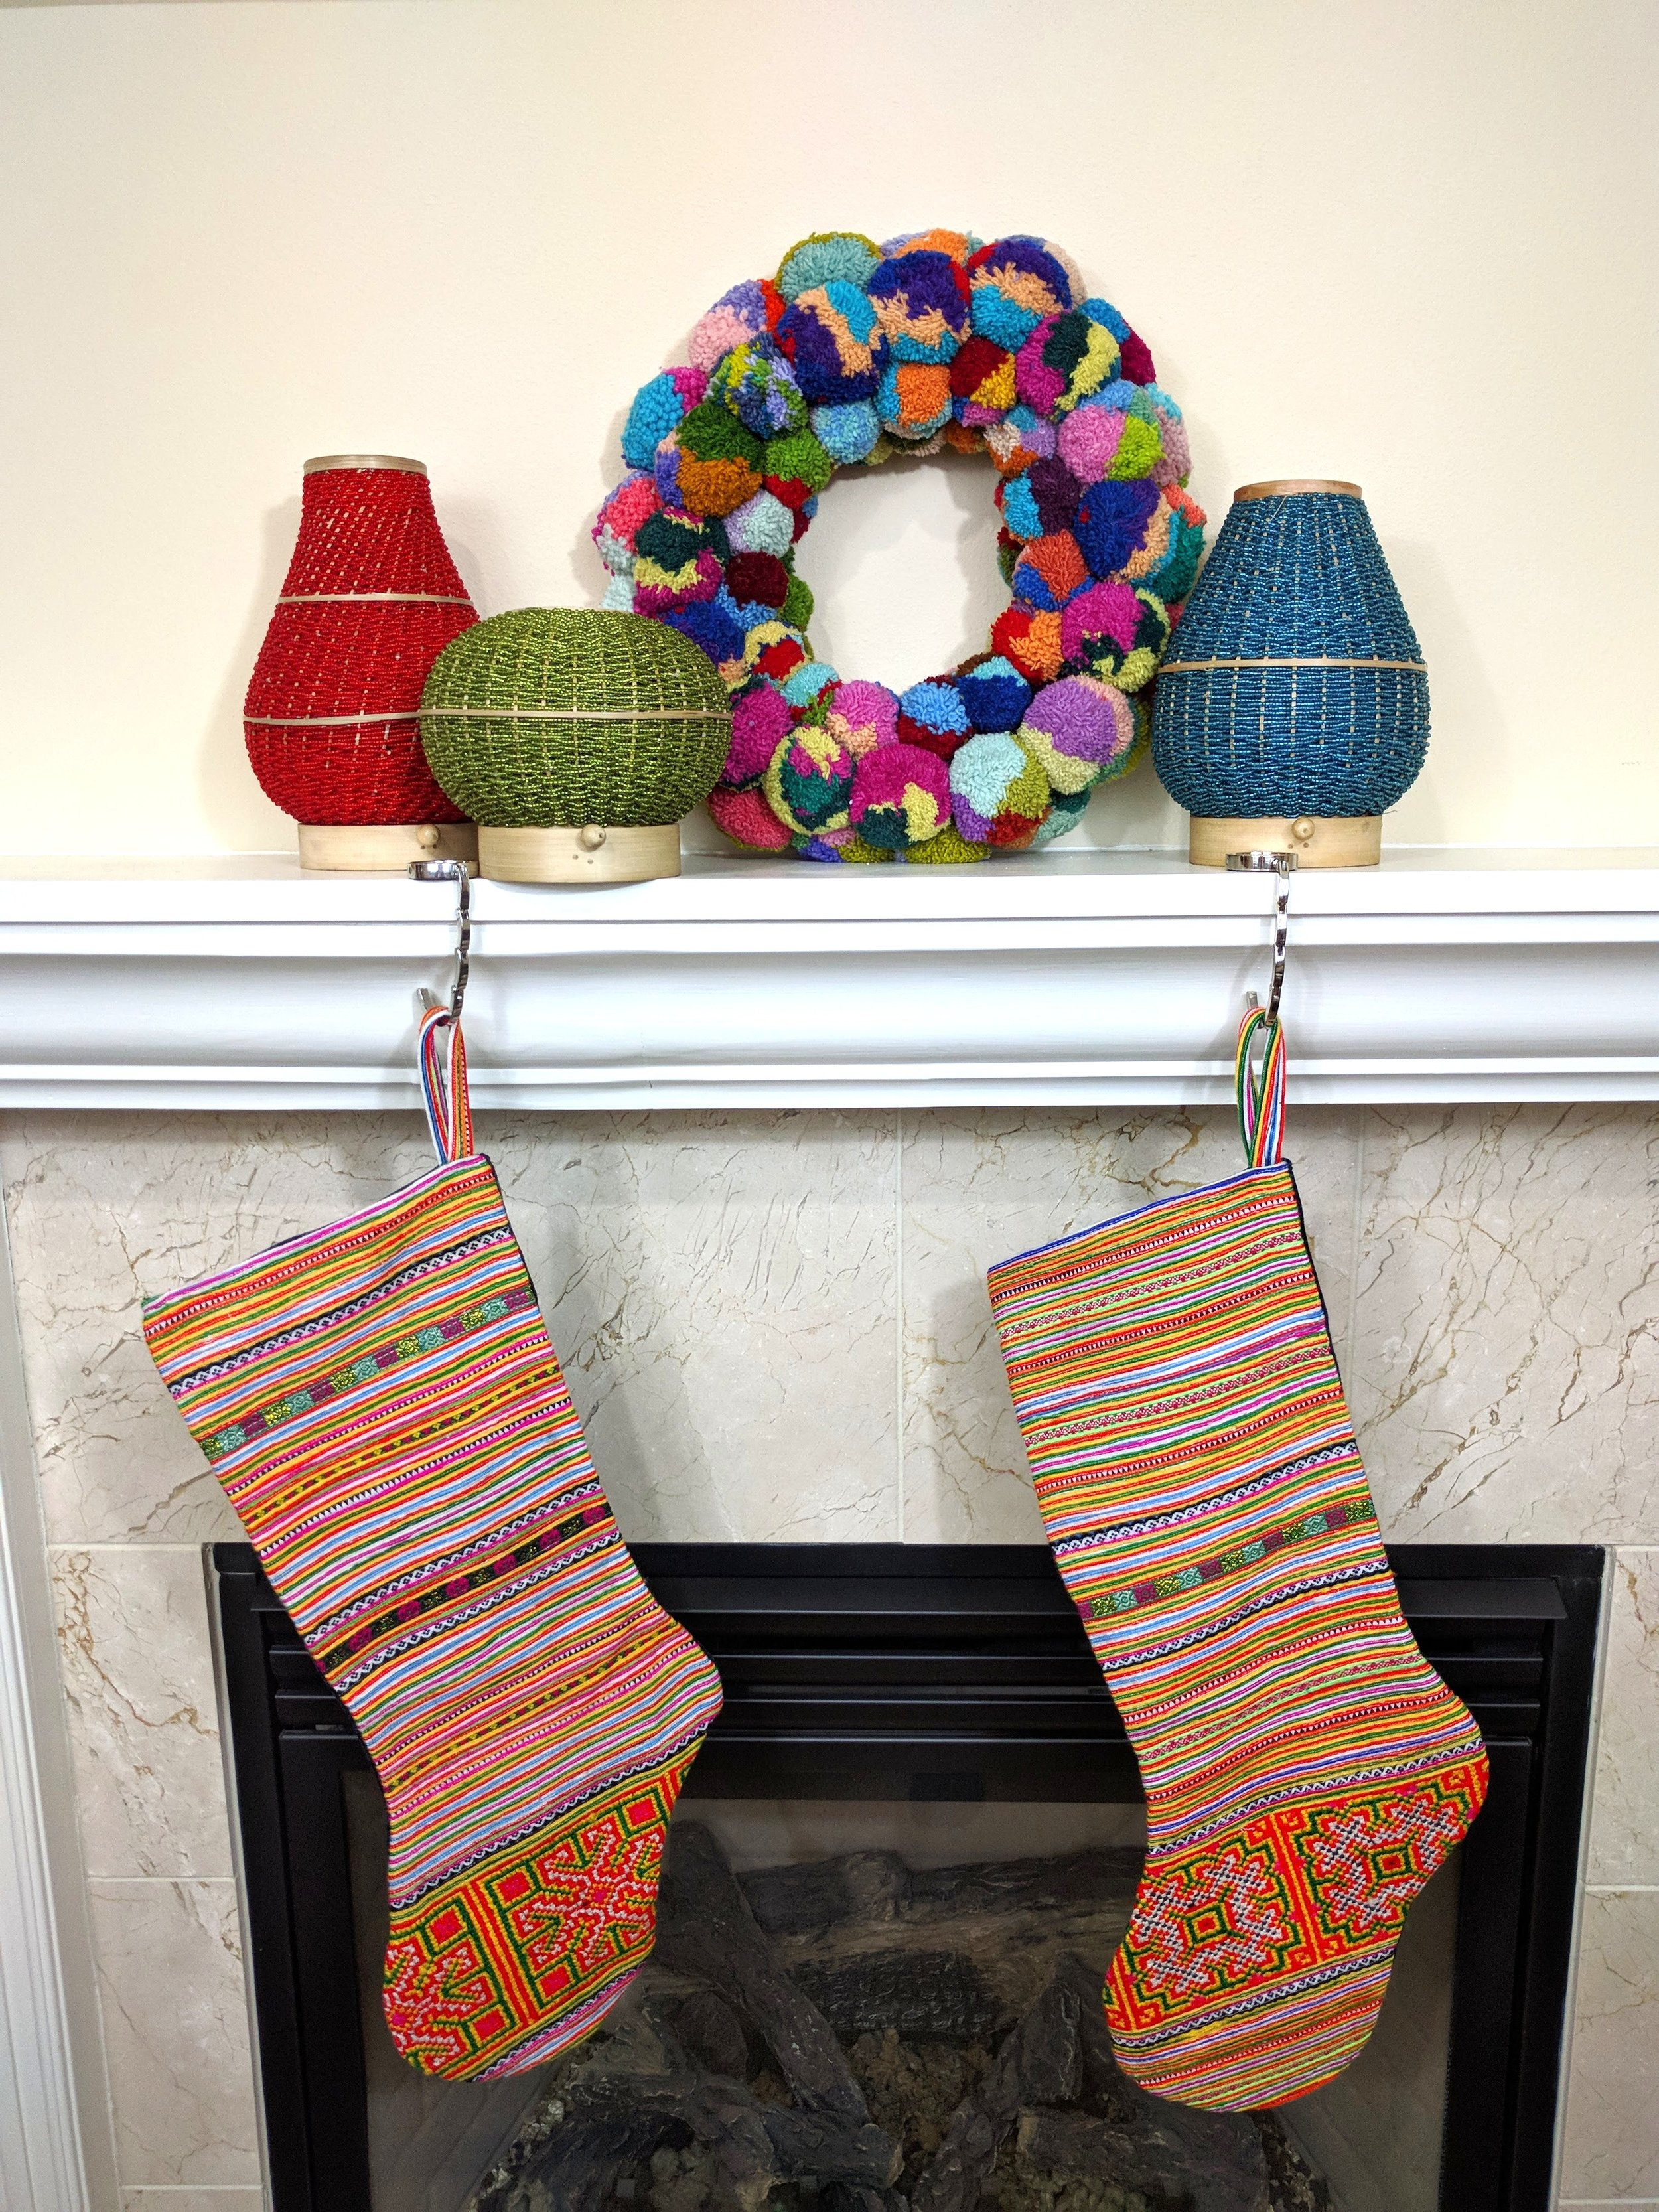 Authentic Hmong fabric is handcrafted into a fair trade stocking from Vietnam that tells a story of culture and craft.